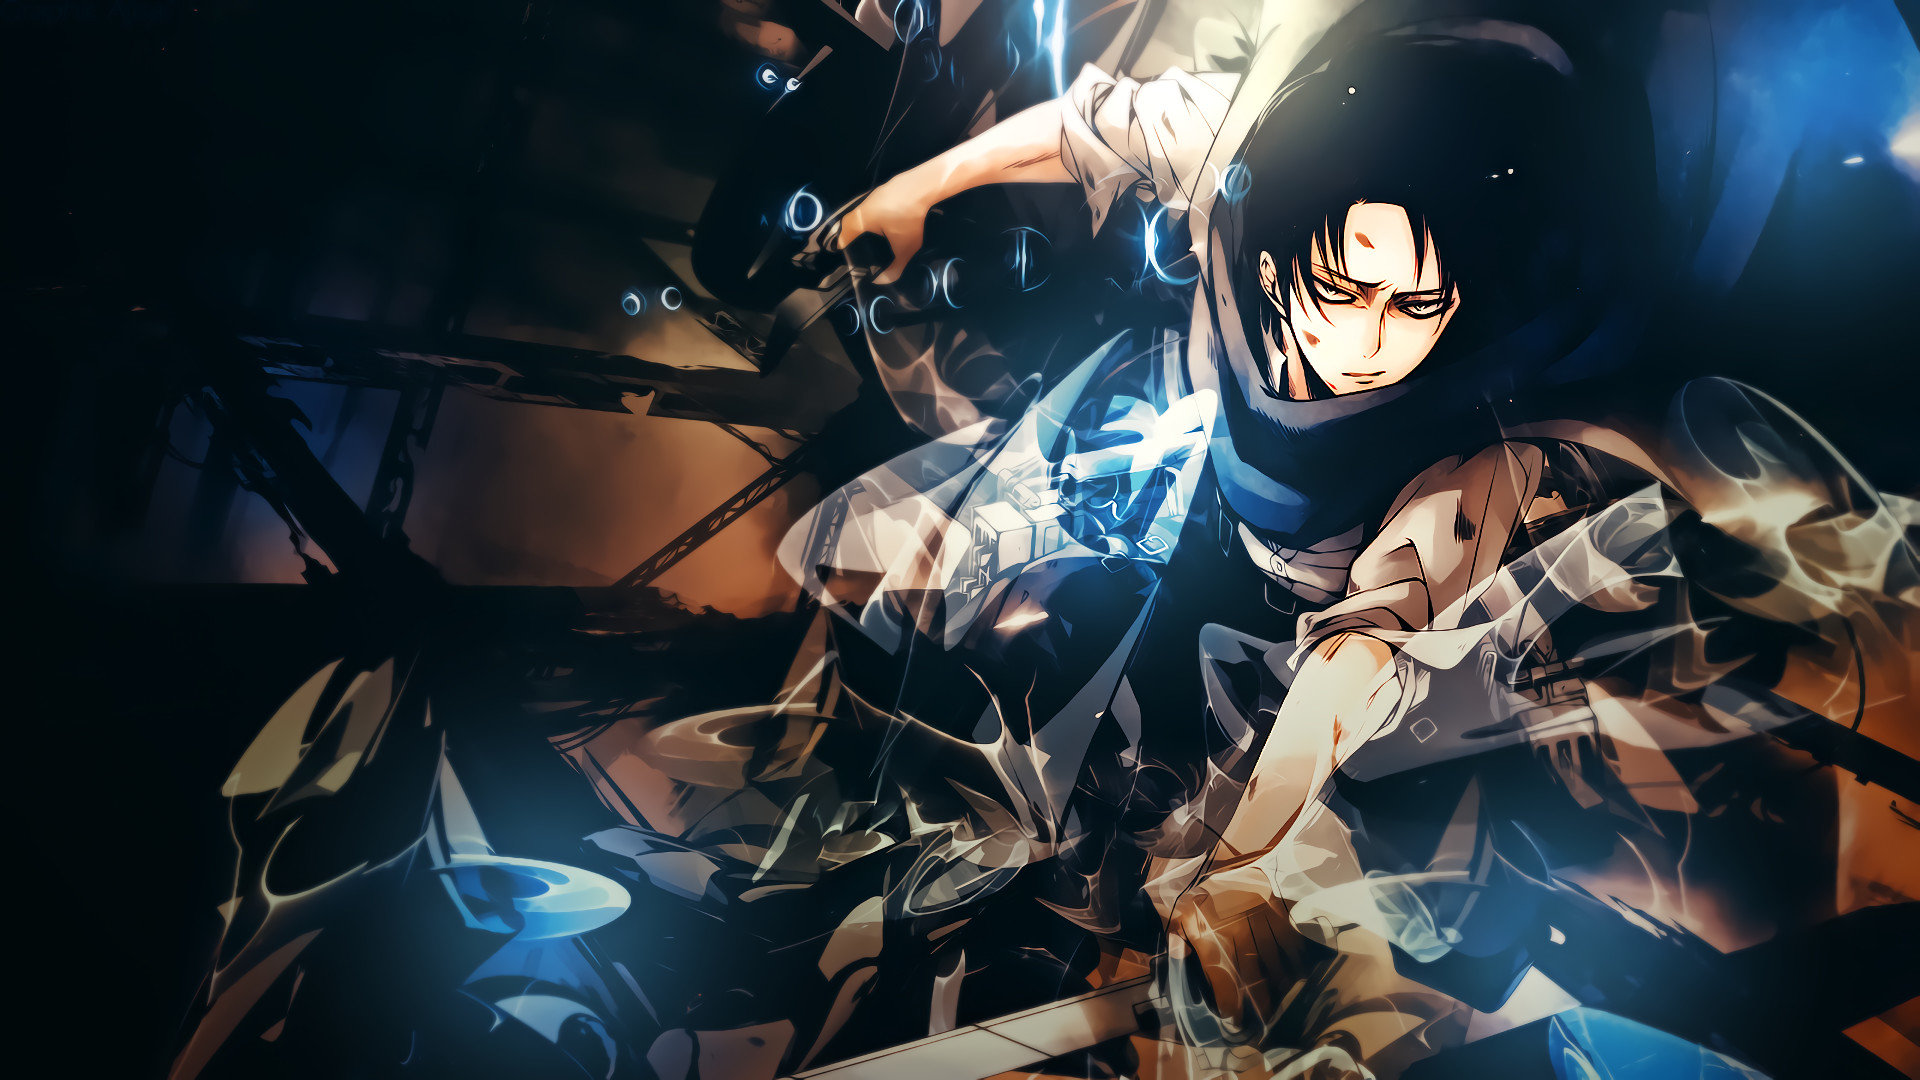 Levi Ackerman 474491 Hd Wallpaper Backgrounds Download